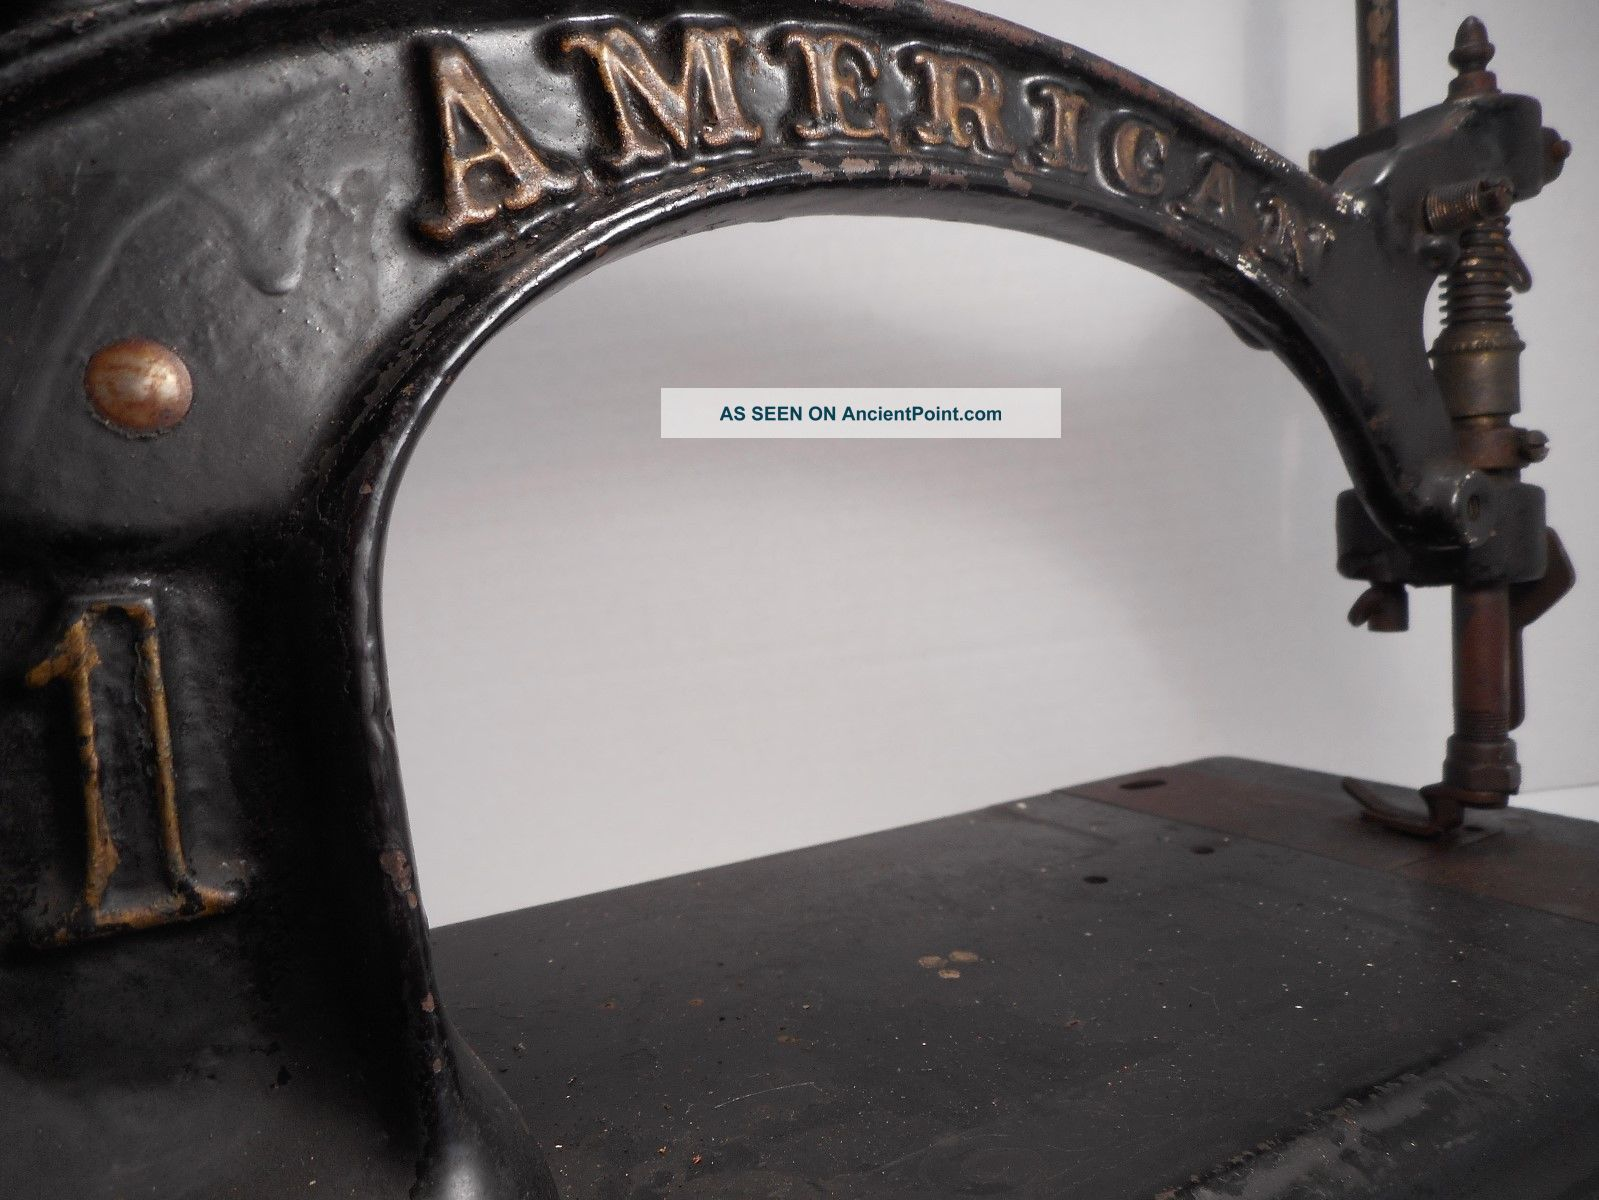 Antique / Vintage American 1 Sewing Machine American Button Hole & Seaming Co Sewing Machines photo